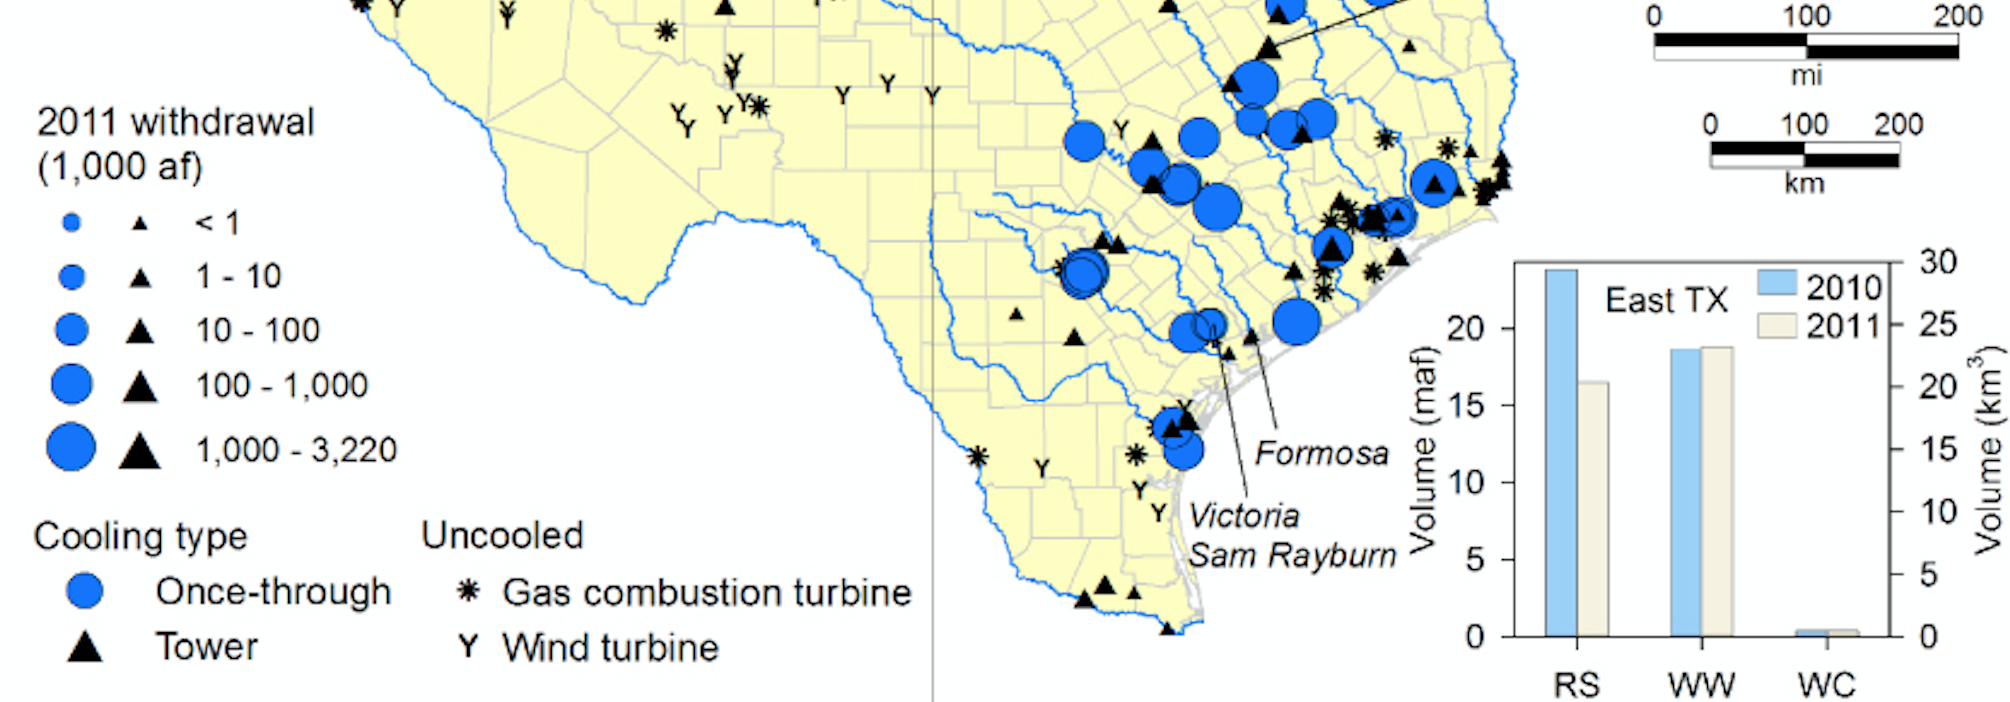 Energy Dependence: Water Withdrawals in E TX